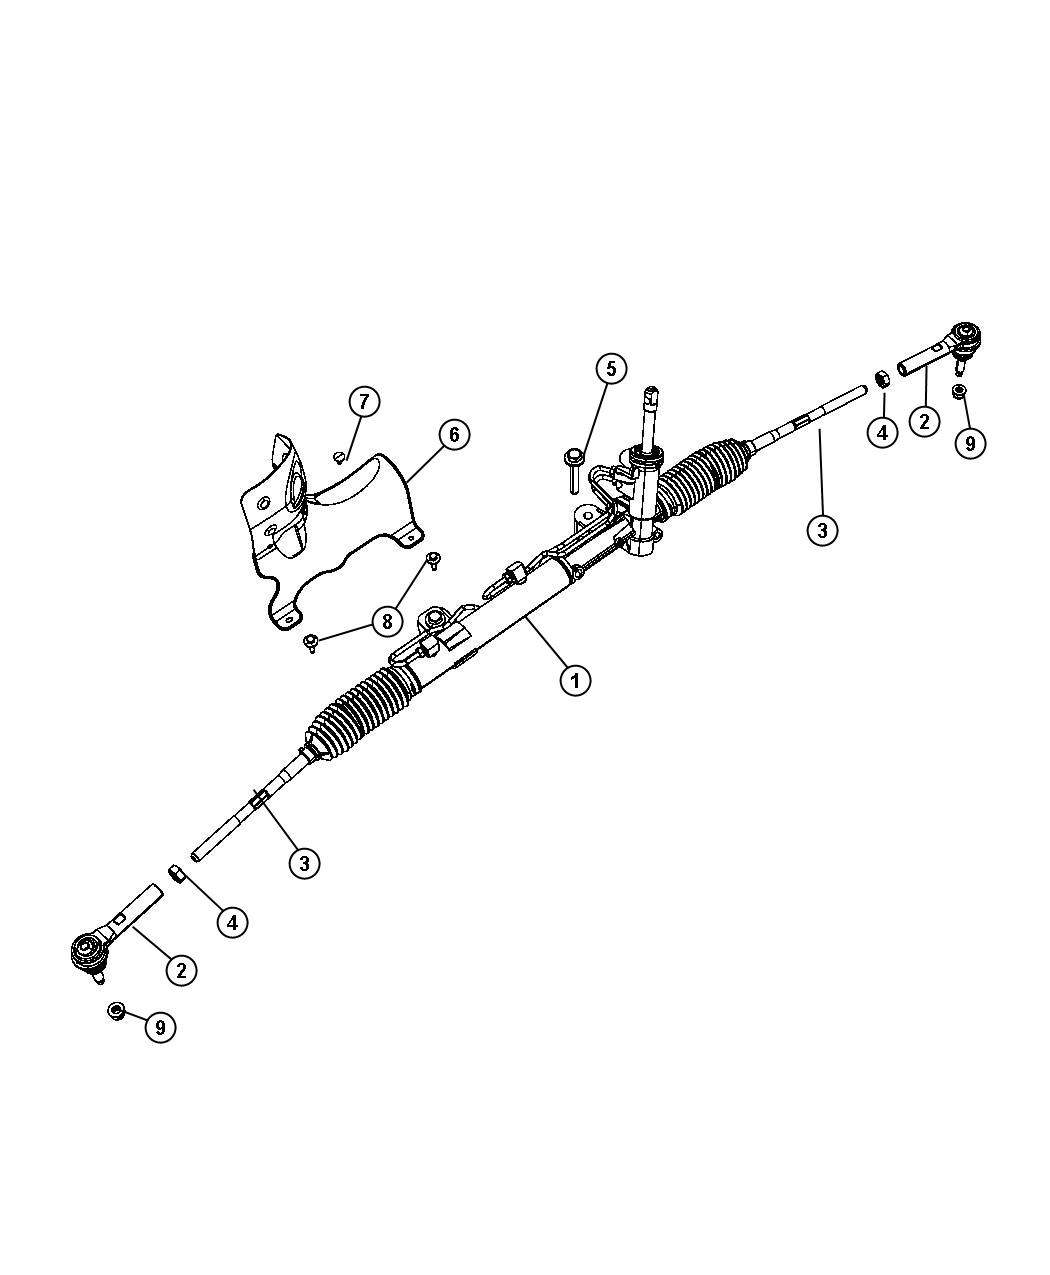 Dodge Journey Gear  Used For  Rack And Pinion